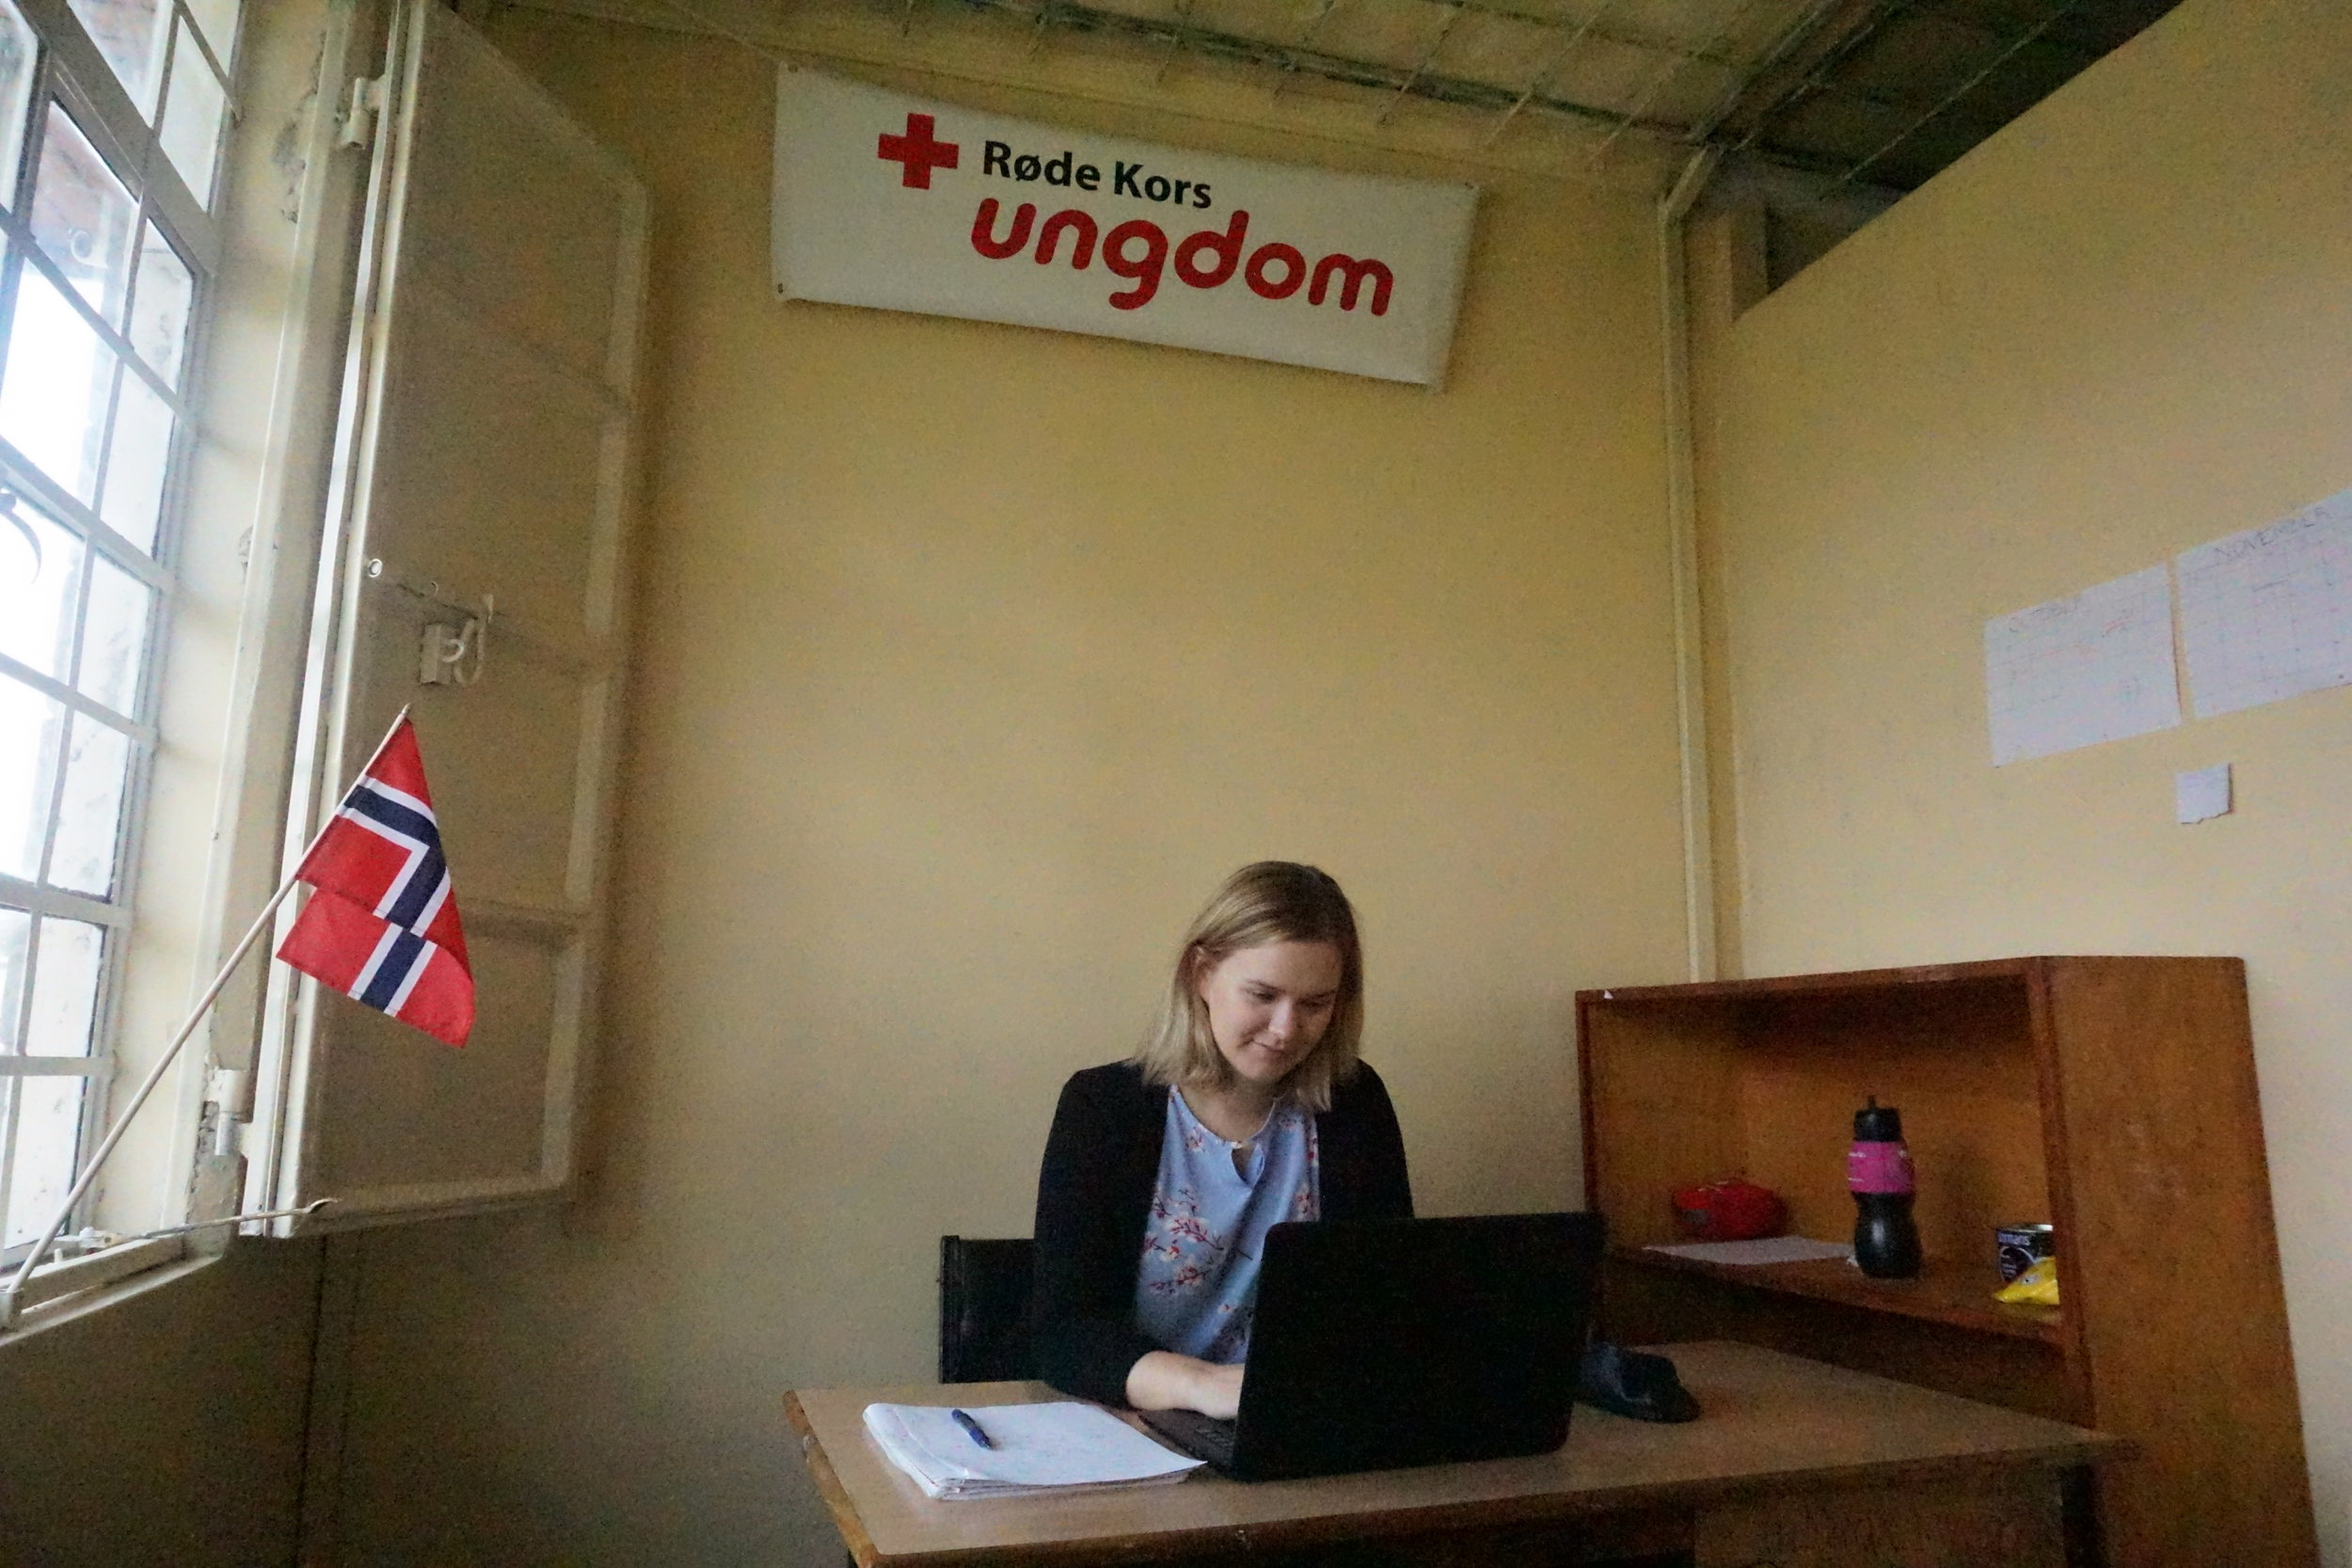 We have decorated our office with the Norwegian flag and the Norwegian Red Cross Youth banner.